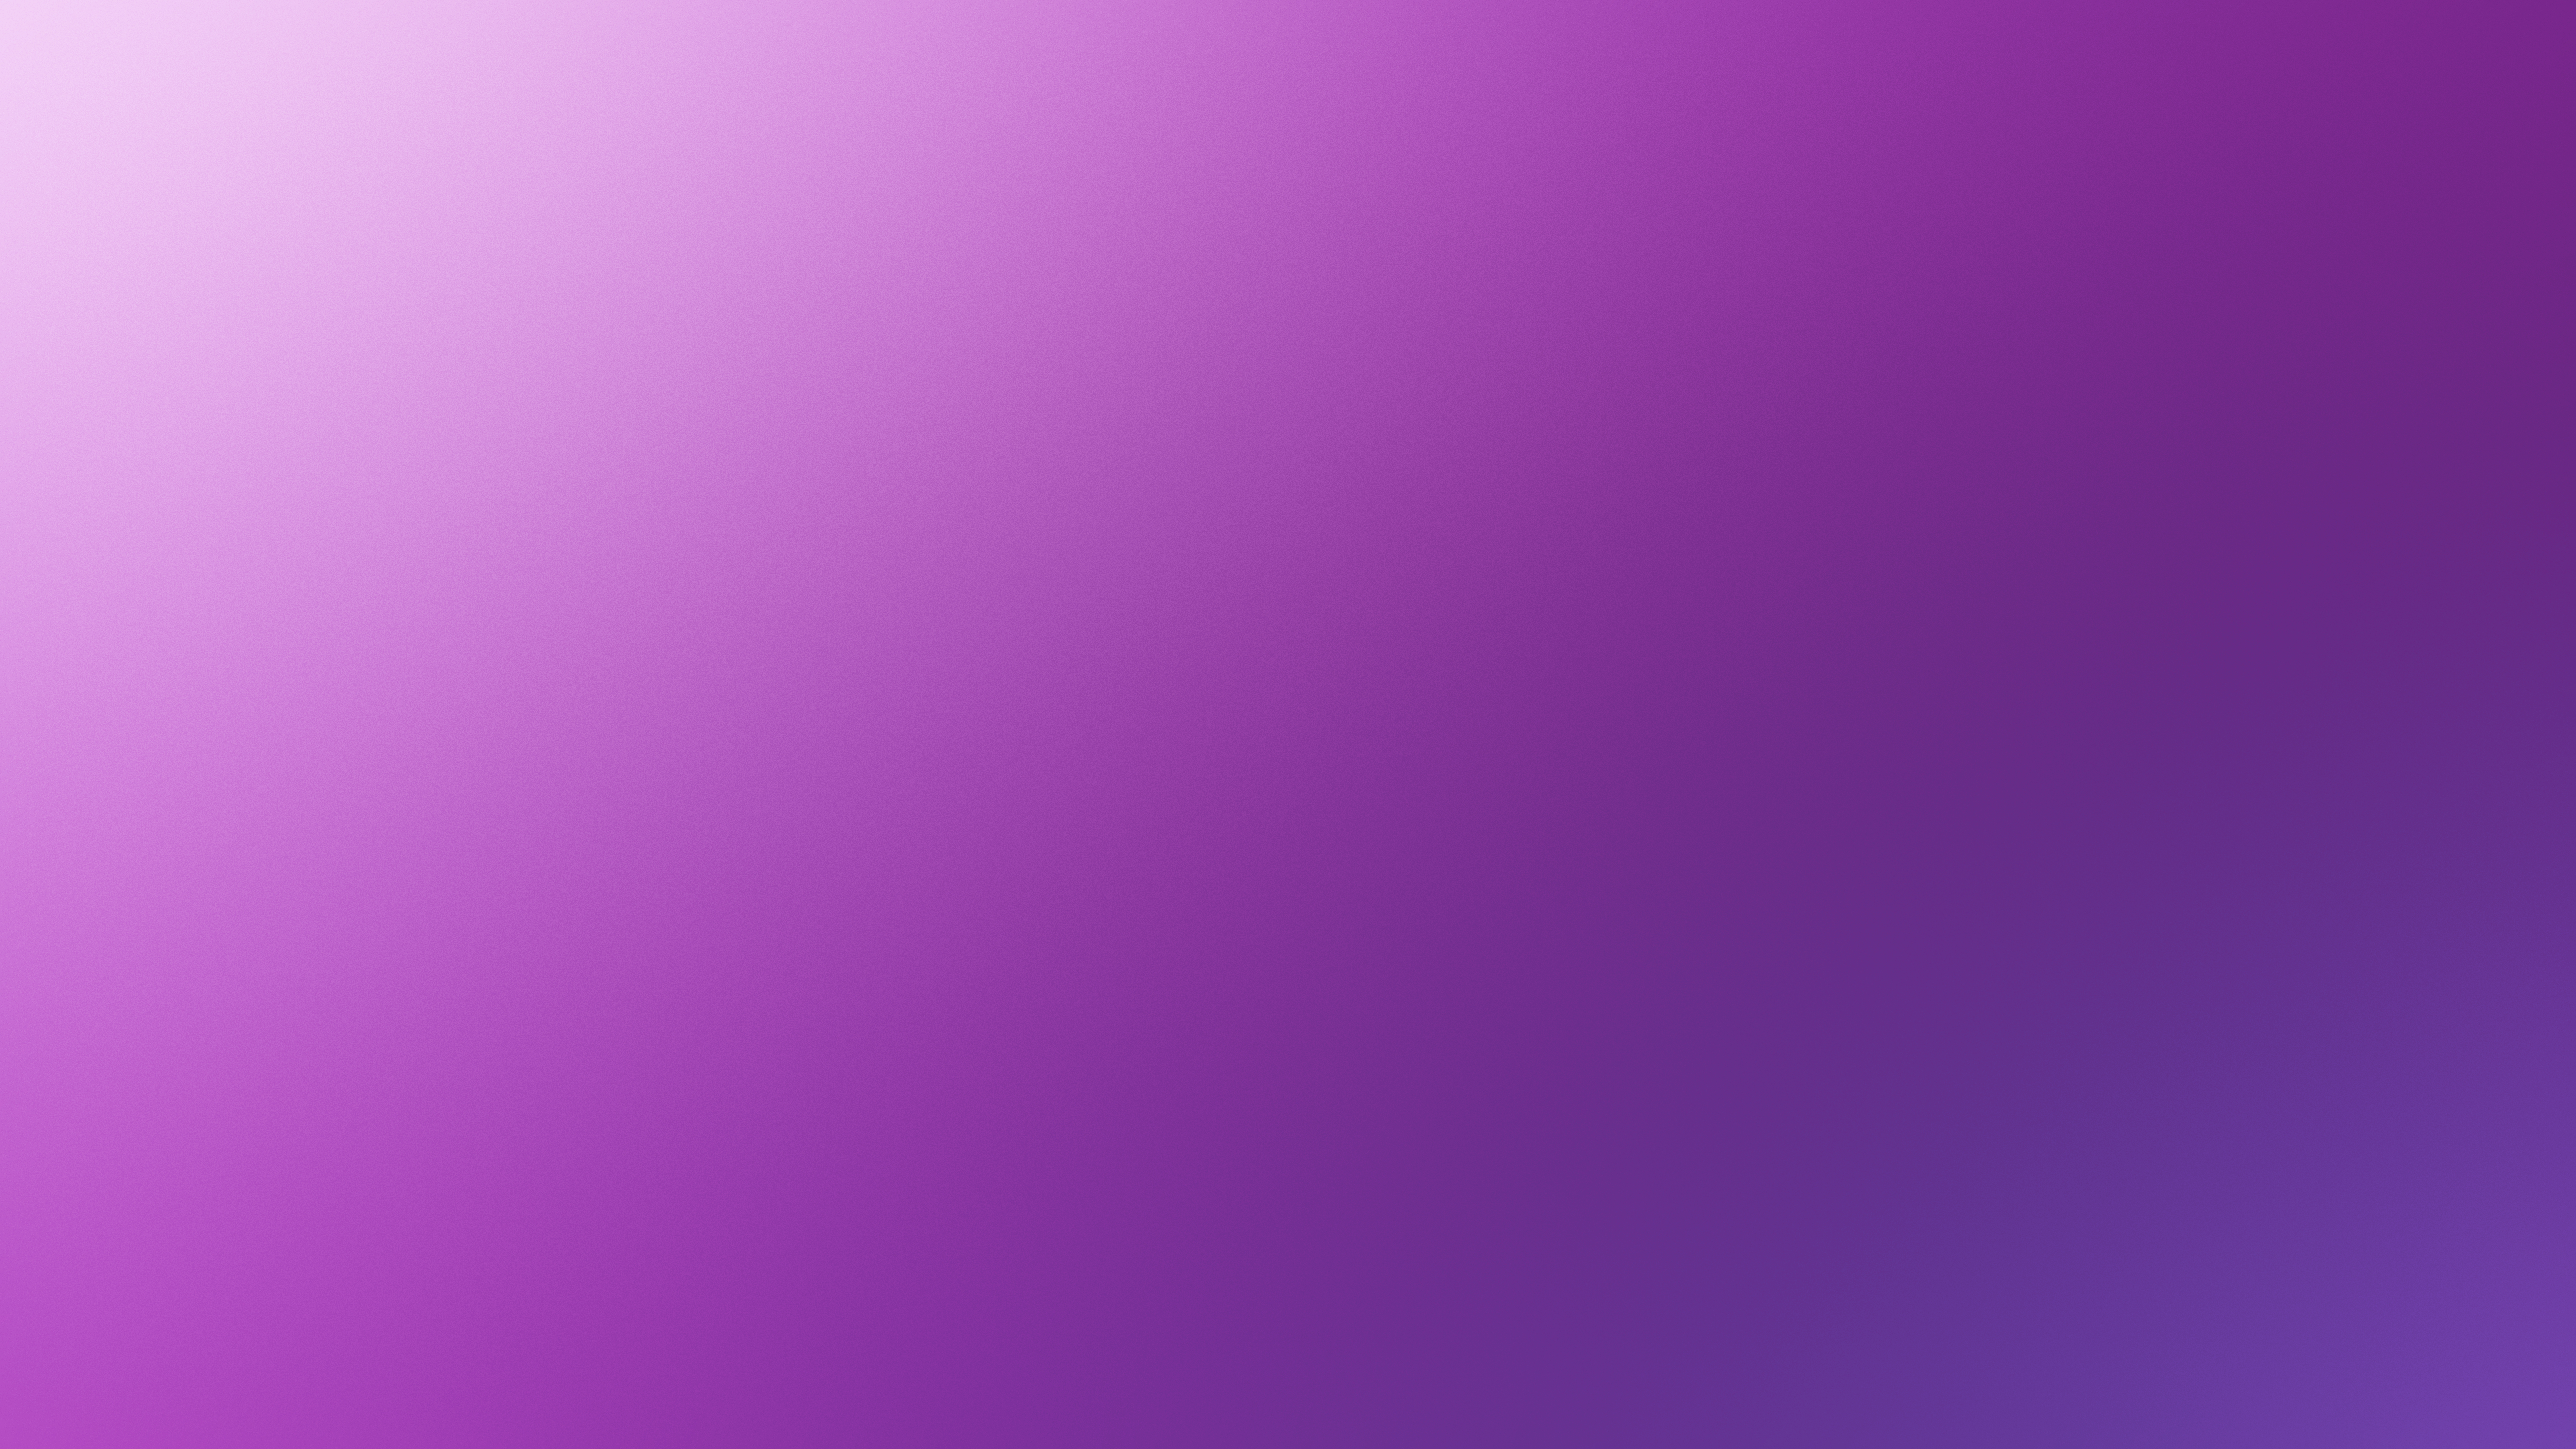 Space Purple Light Blur Minimalism 4k Hd Artist 4k